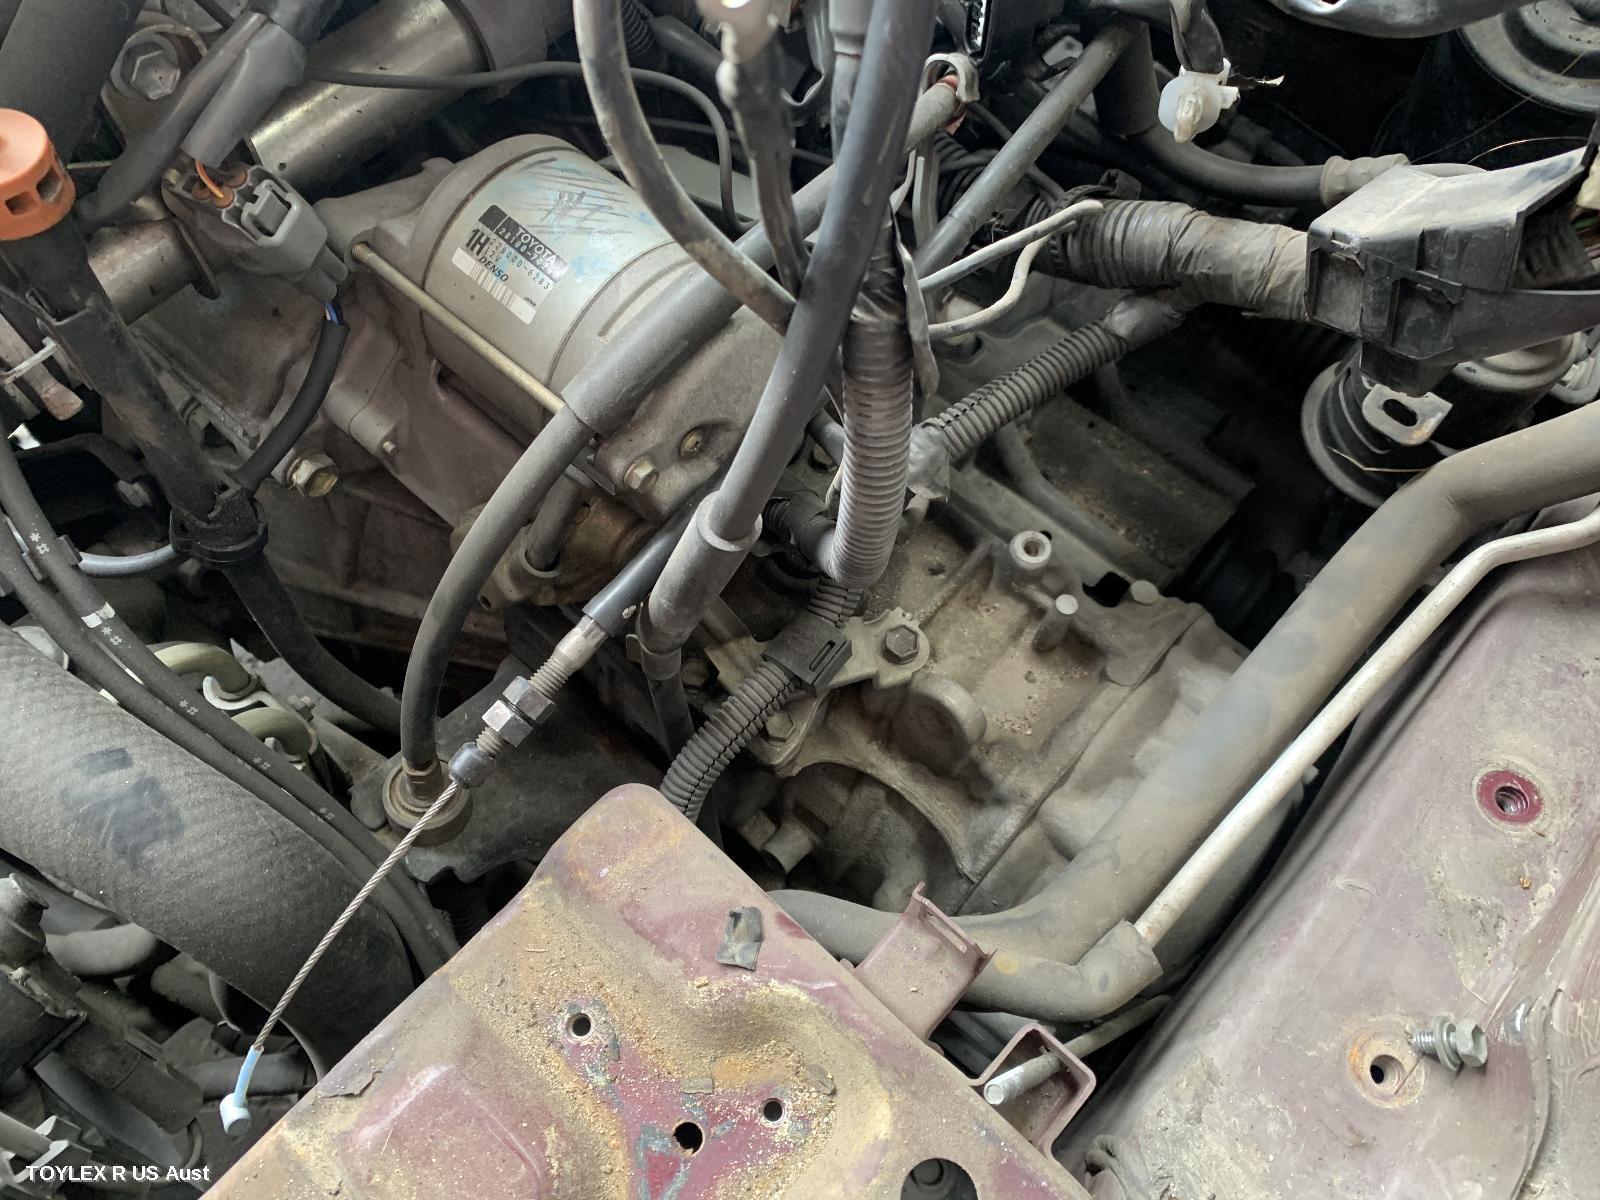 TOYOTA CAMRY, Trans/Gearbox, AUTO, PETROL, 3.0, 1MZ, SK20, 08/97-08/02